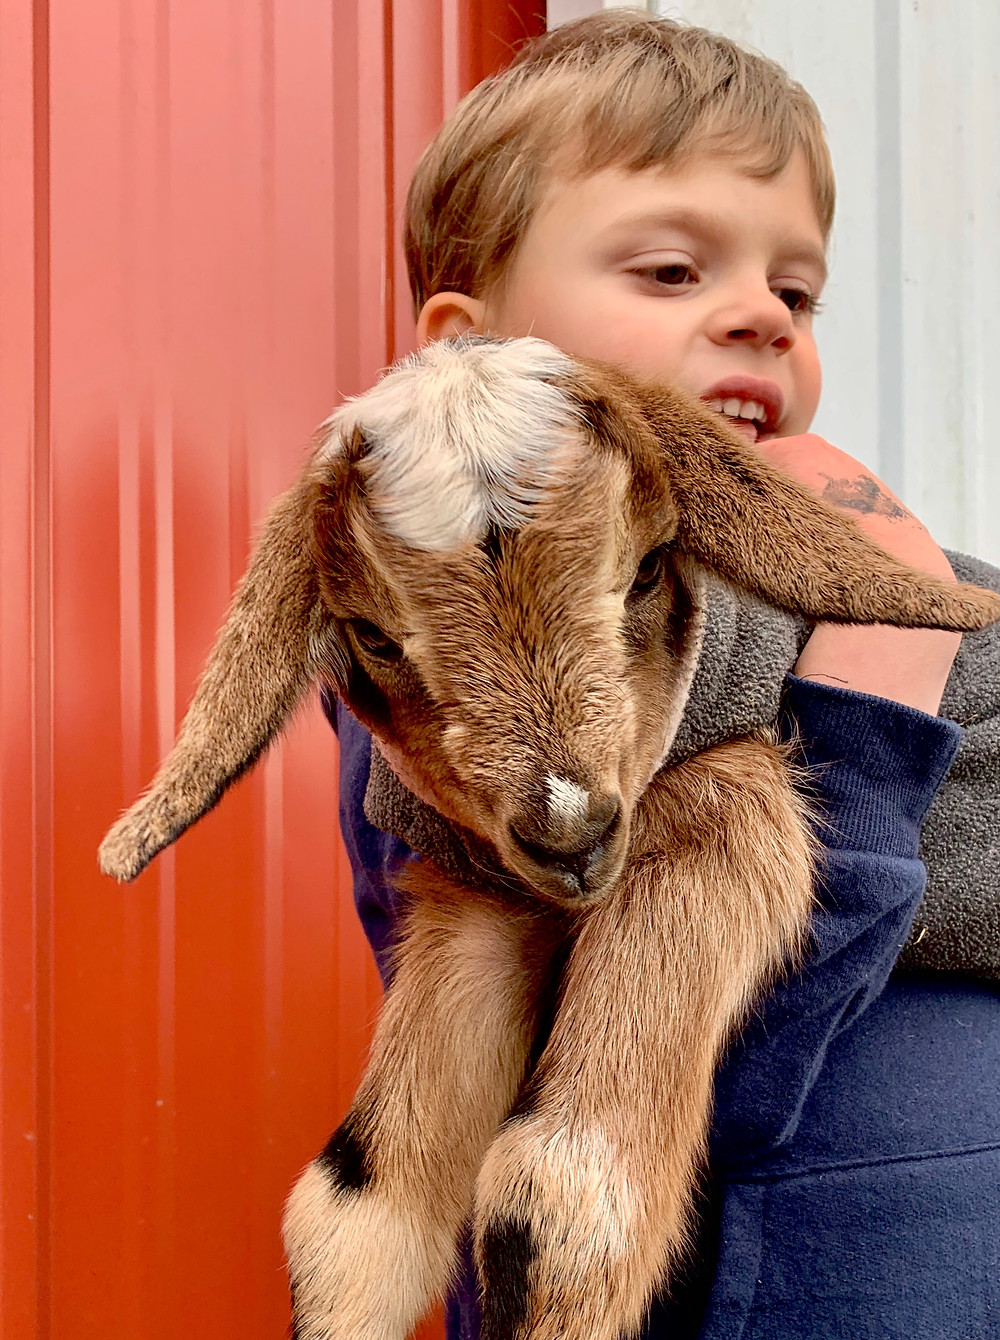 Our Grandson with His Goat, Ally. 2/9/20